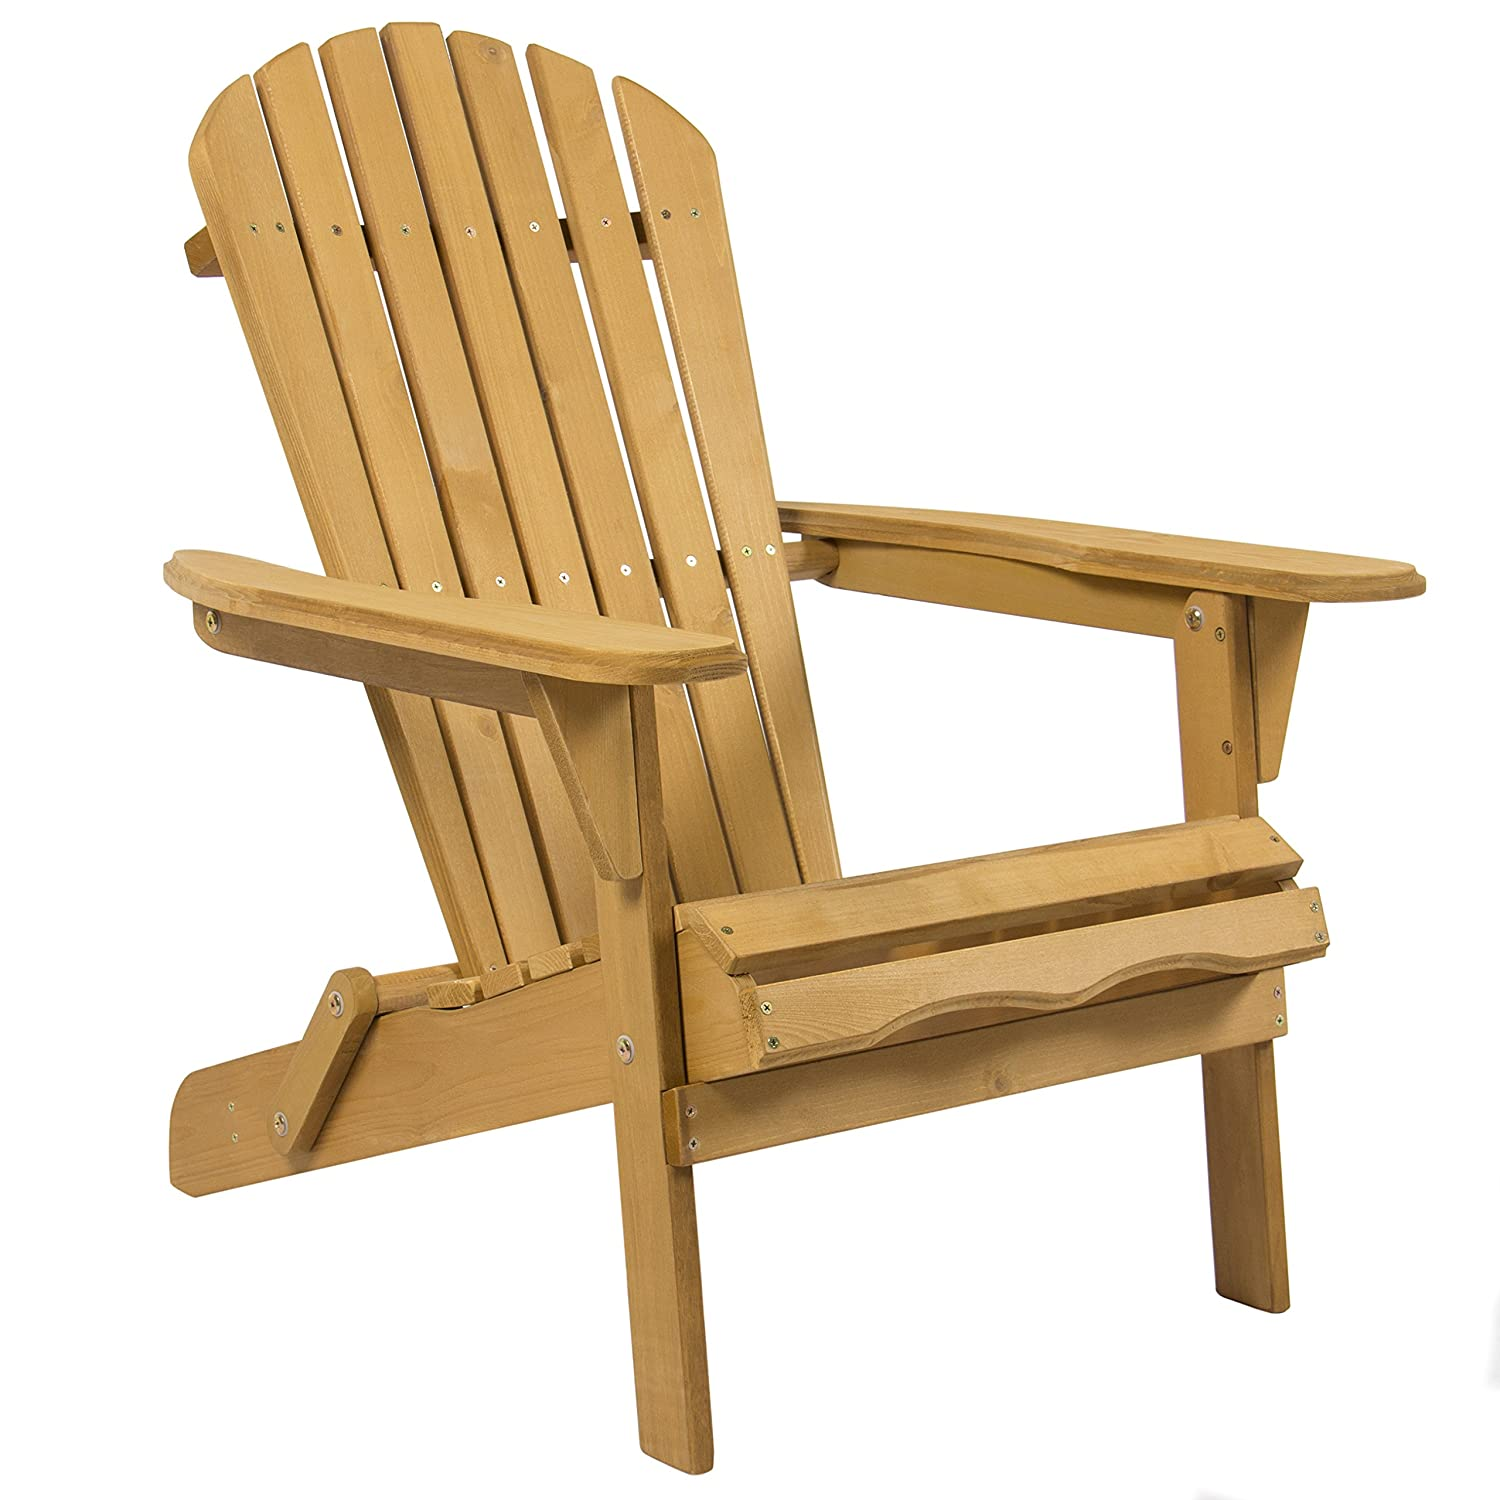 Adirondack Chairs Patio Furniture Amazon